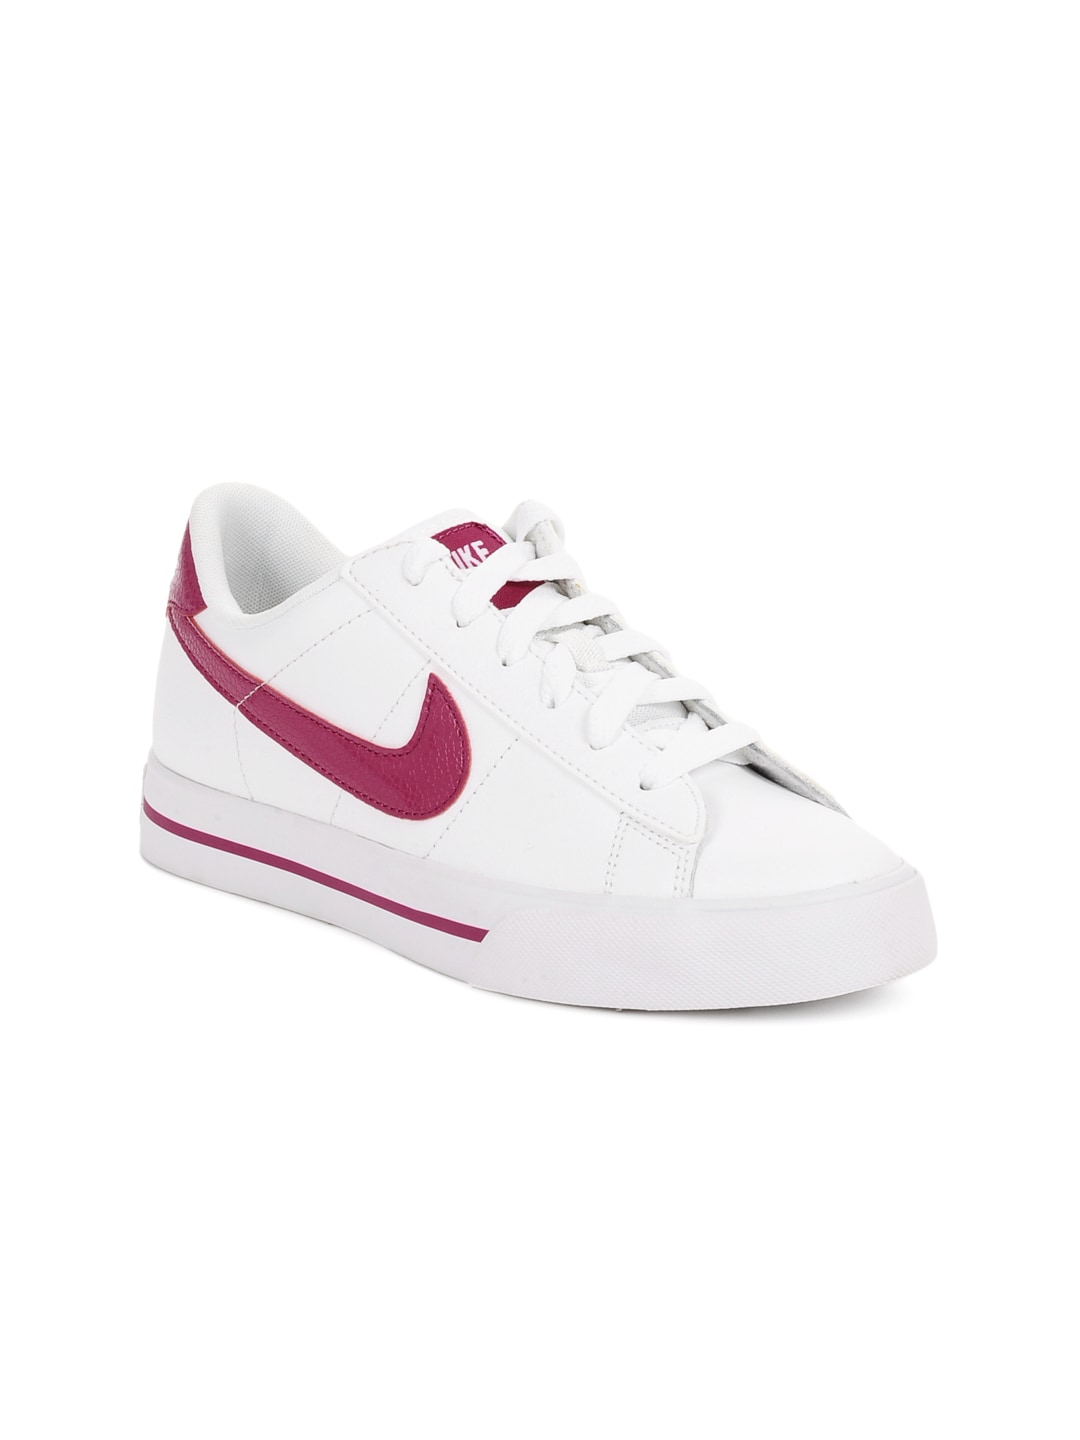 9dc5ee0e1 Nike 354496-129 Women White Sweet Classic Leather Shoes- Price in India